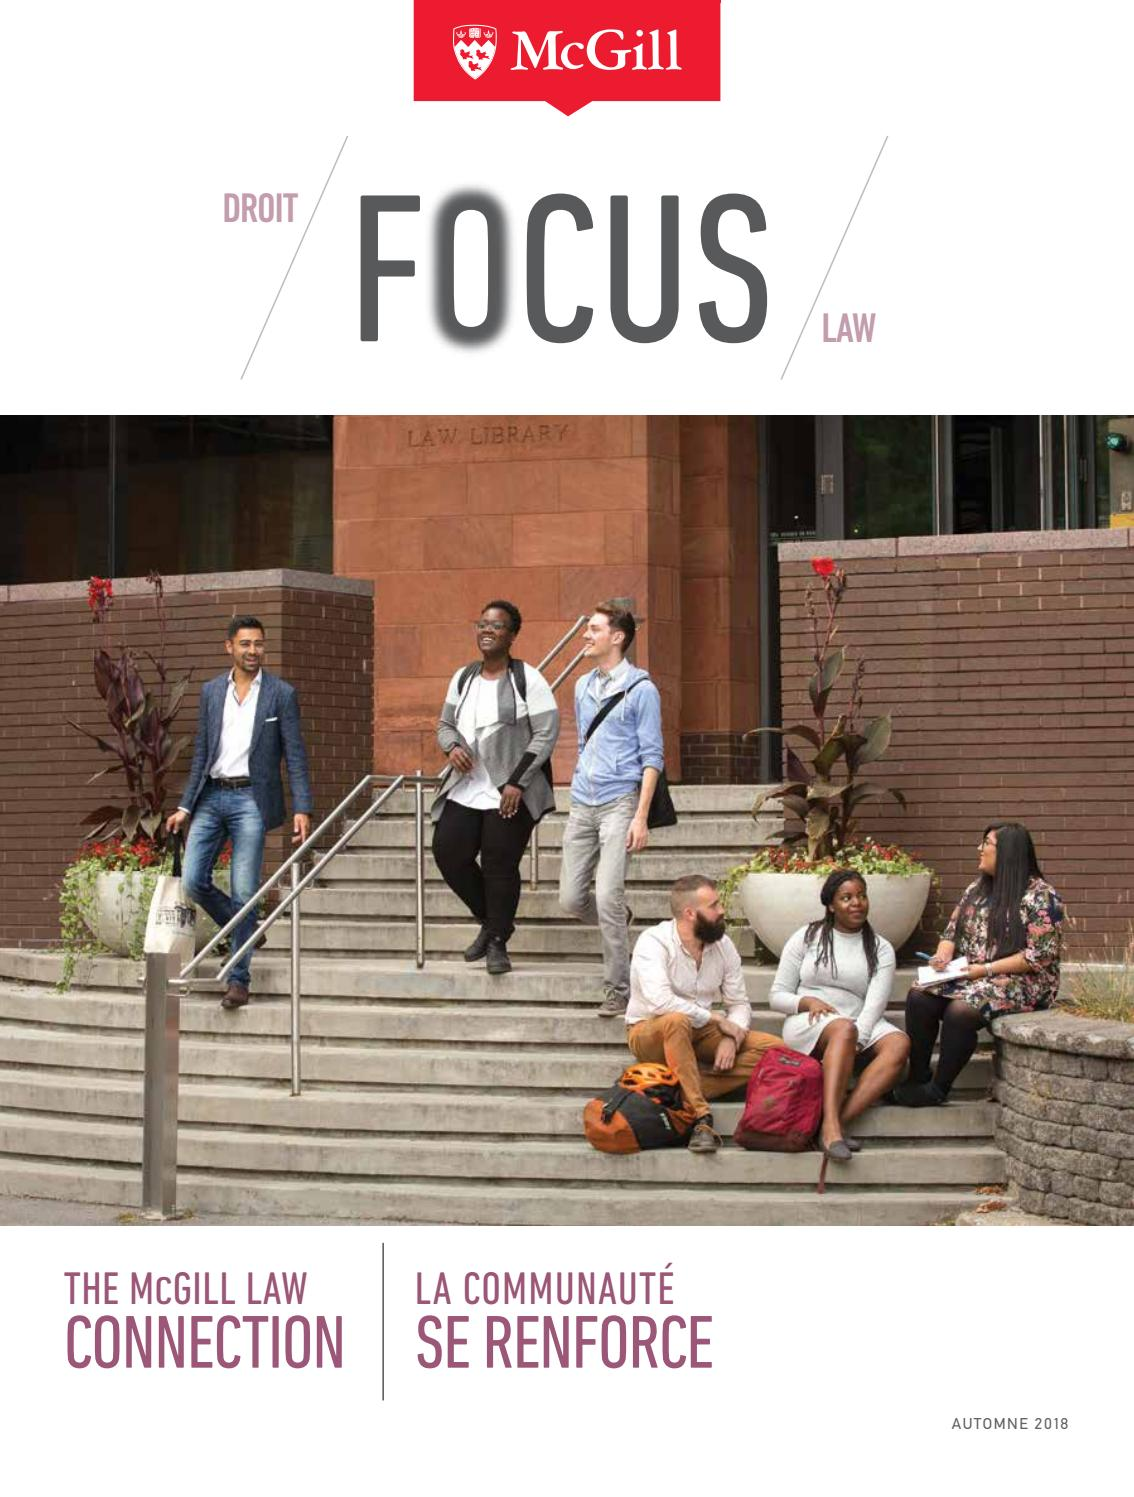 Focus 2018 The Mcgill Law Connection La Communauté Se